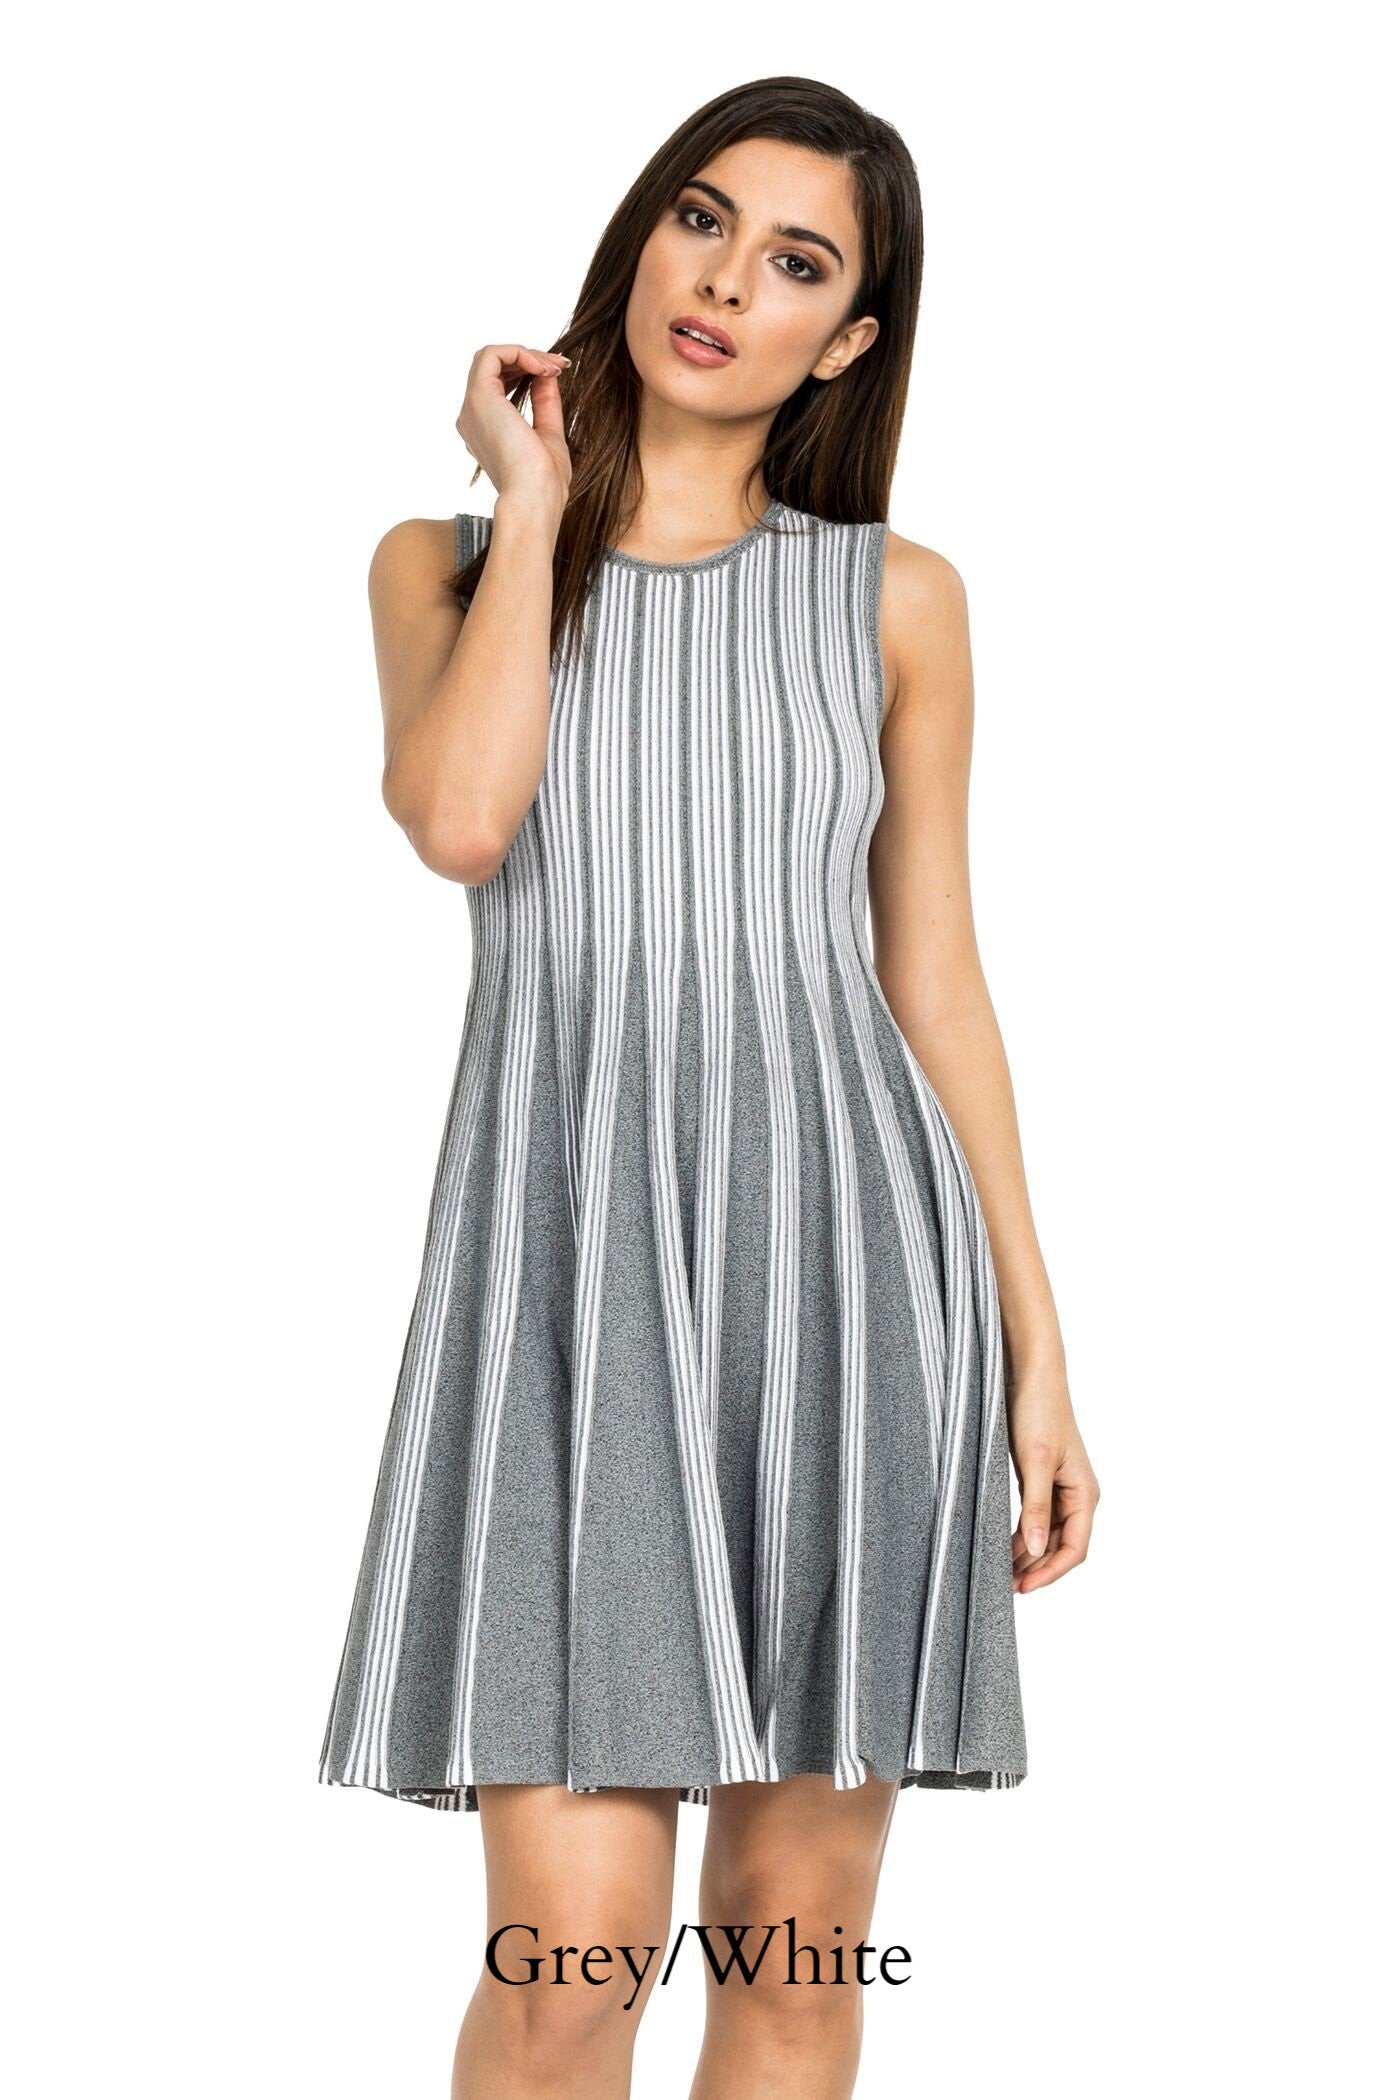 Front view woman wearing grey/white striped knit sleeveless fit-and-flare knee-length dress